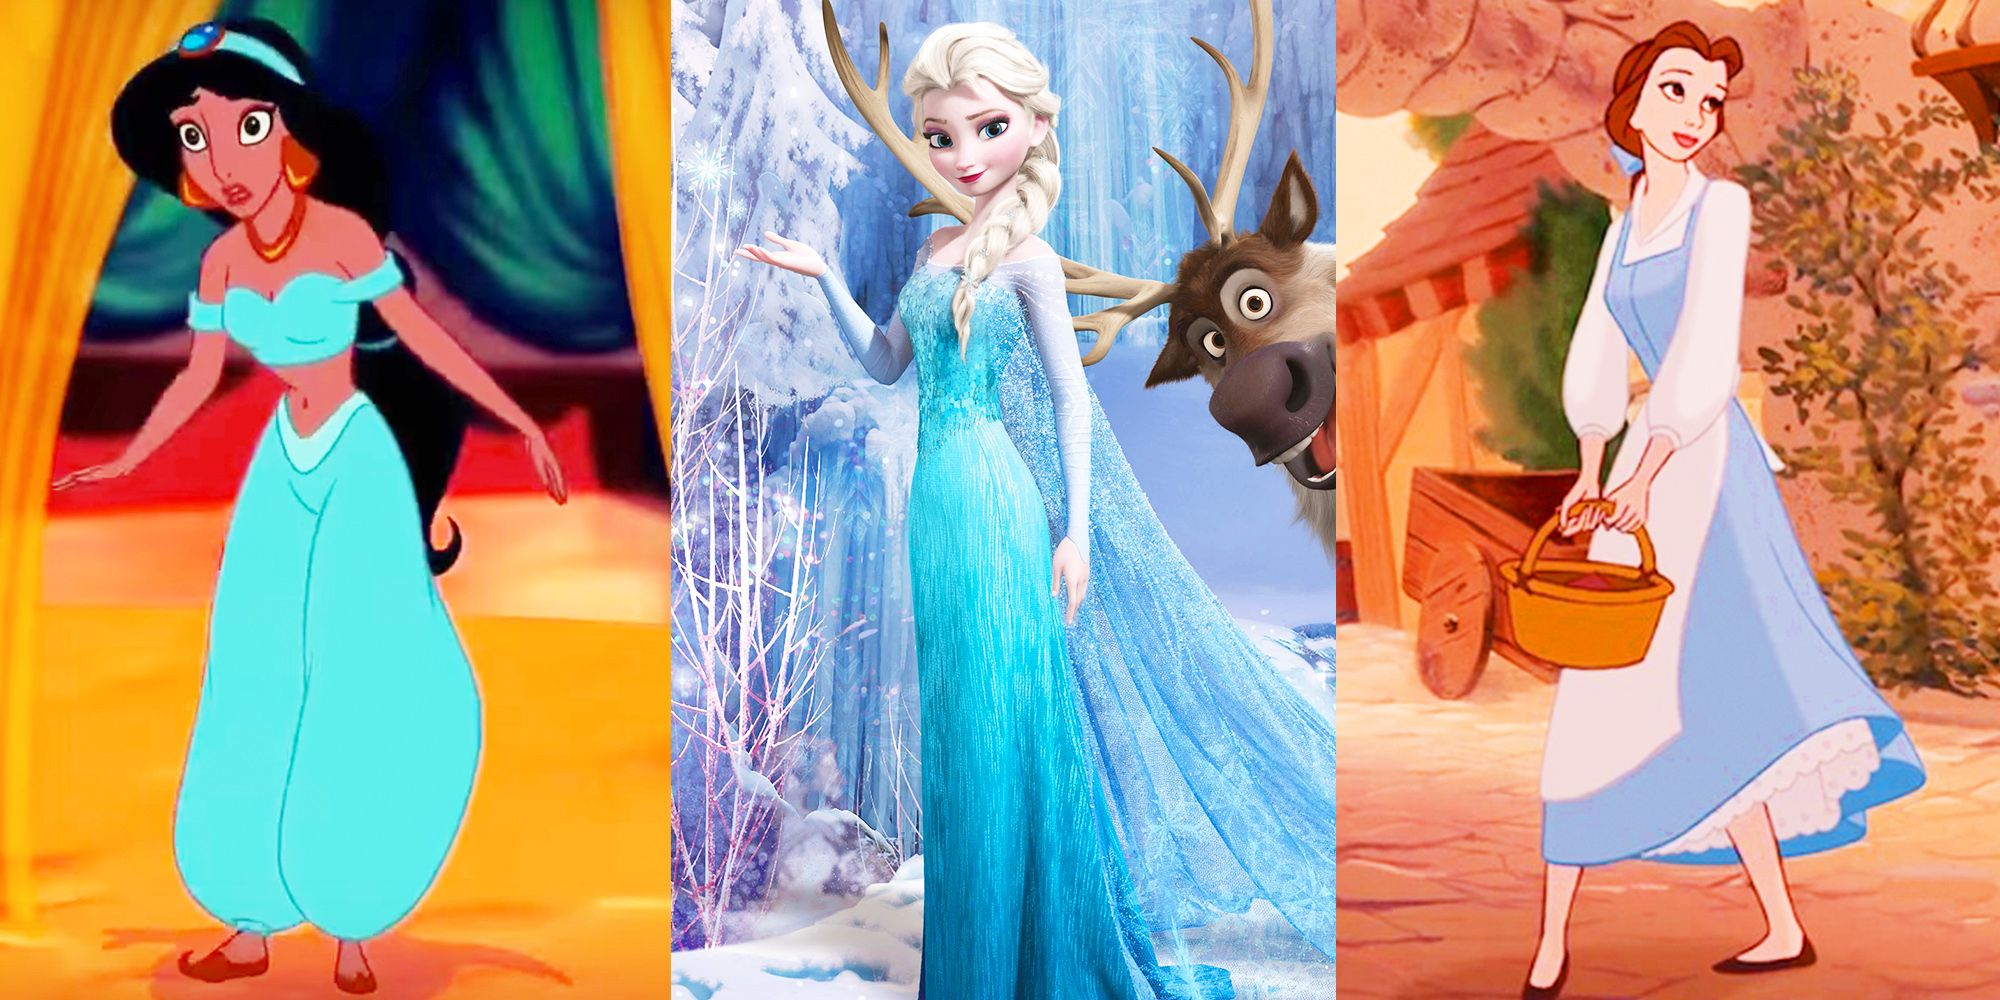 lovely Disney Princess Signature Colors Part - 16: Why Disney Princesses Wear Blue